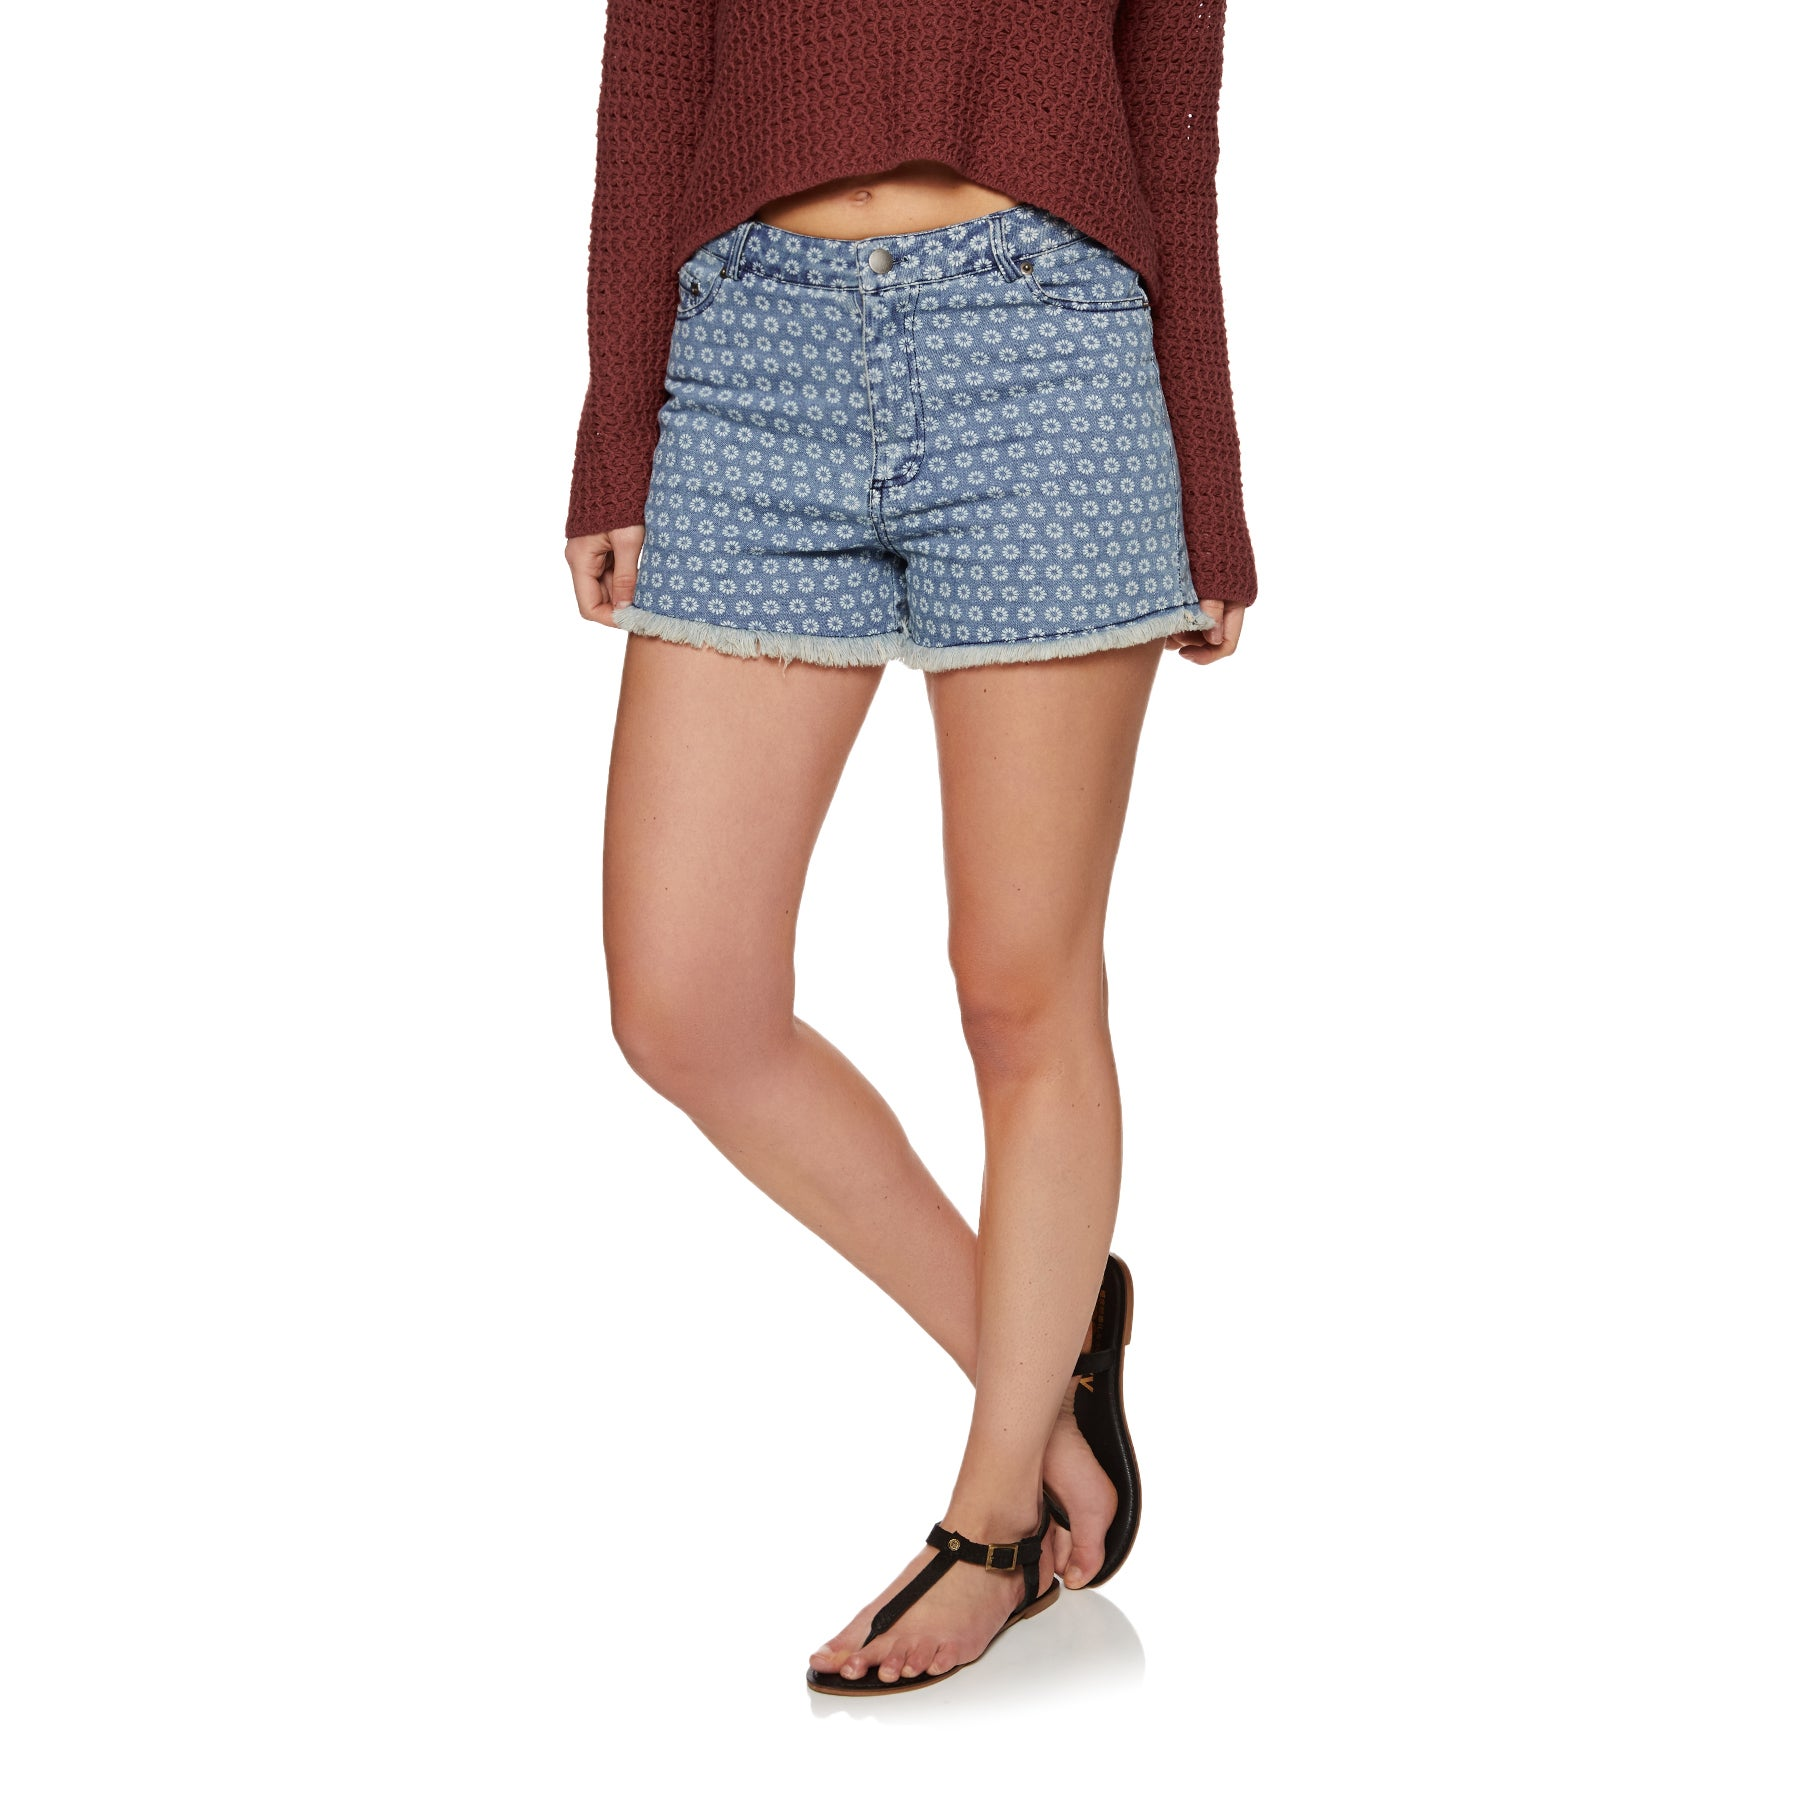 SWELL Daisy Printed Ladies Shorts